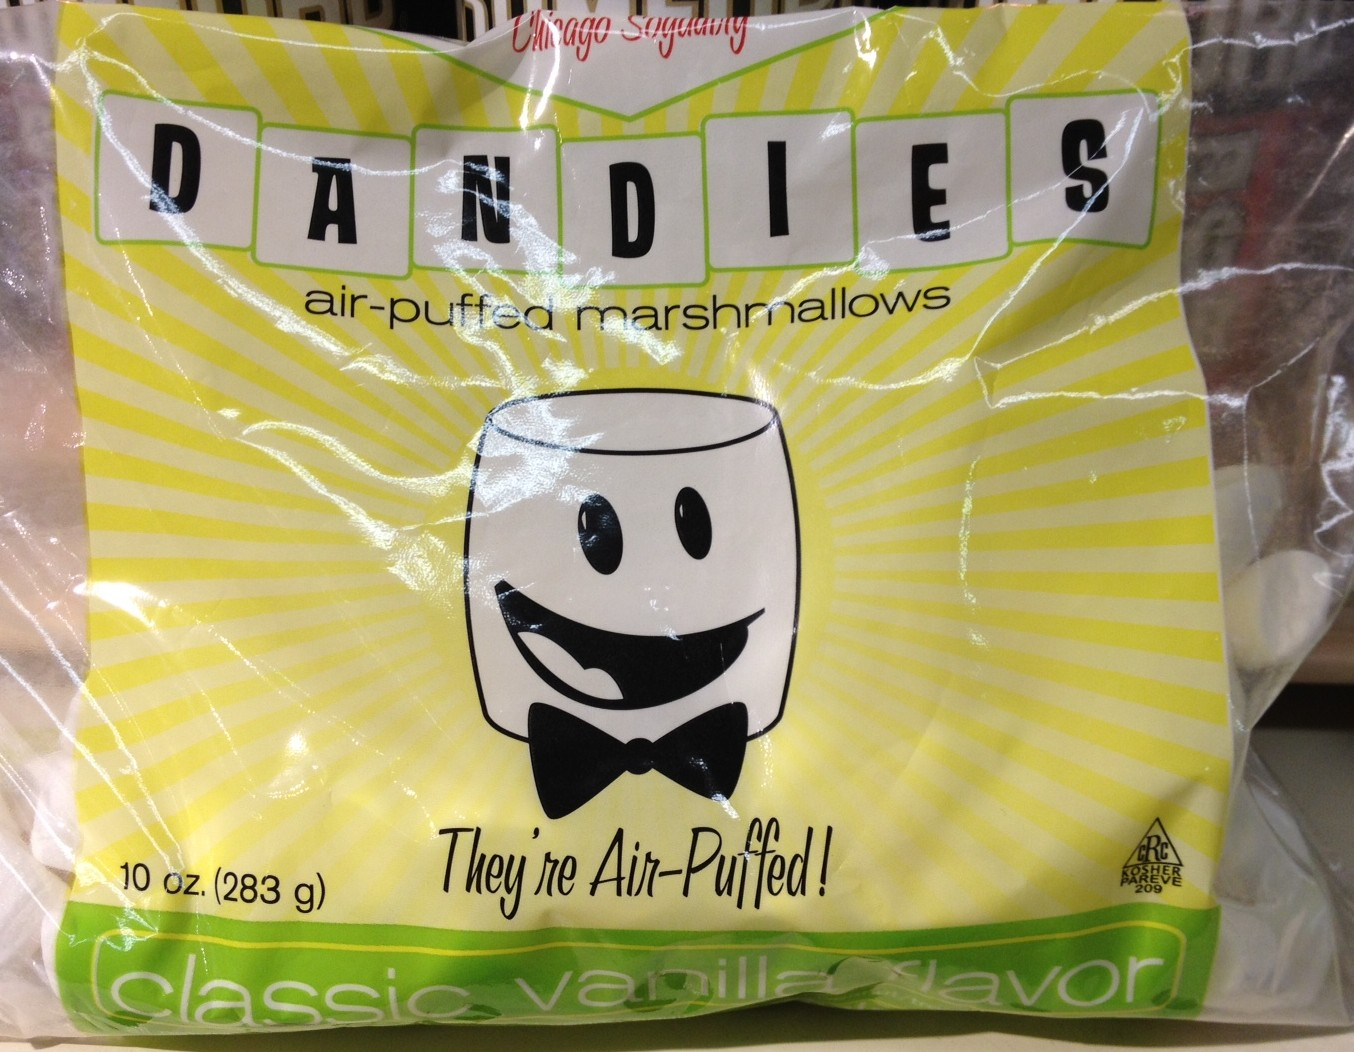 Accidentally Vegan: Dandies Vegan Marshmallows from Chicago Soy Dairy!